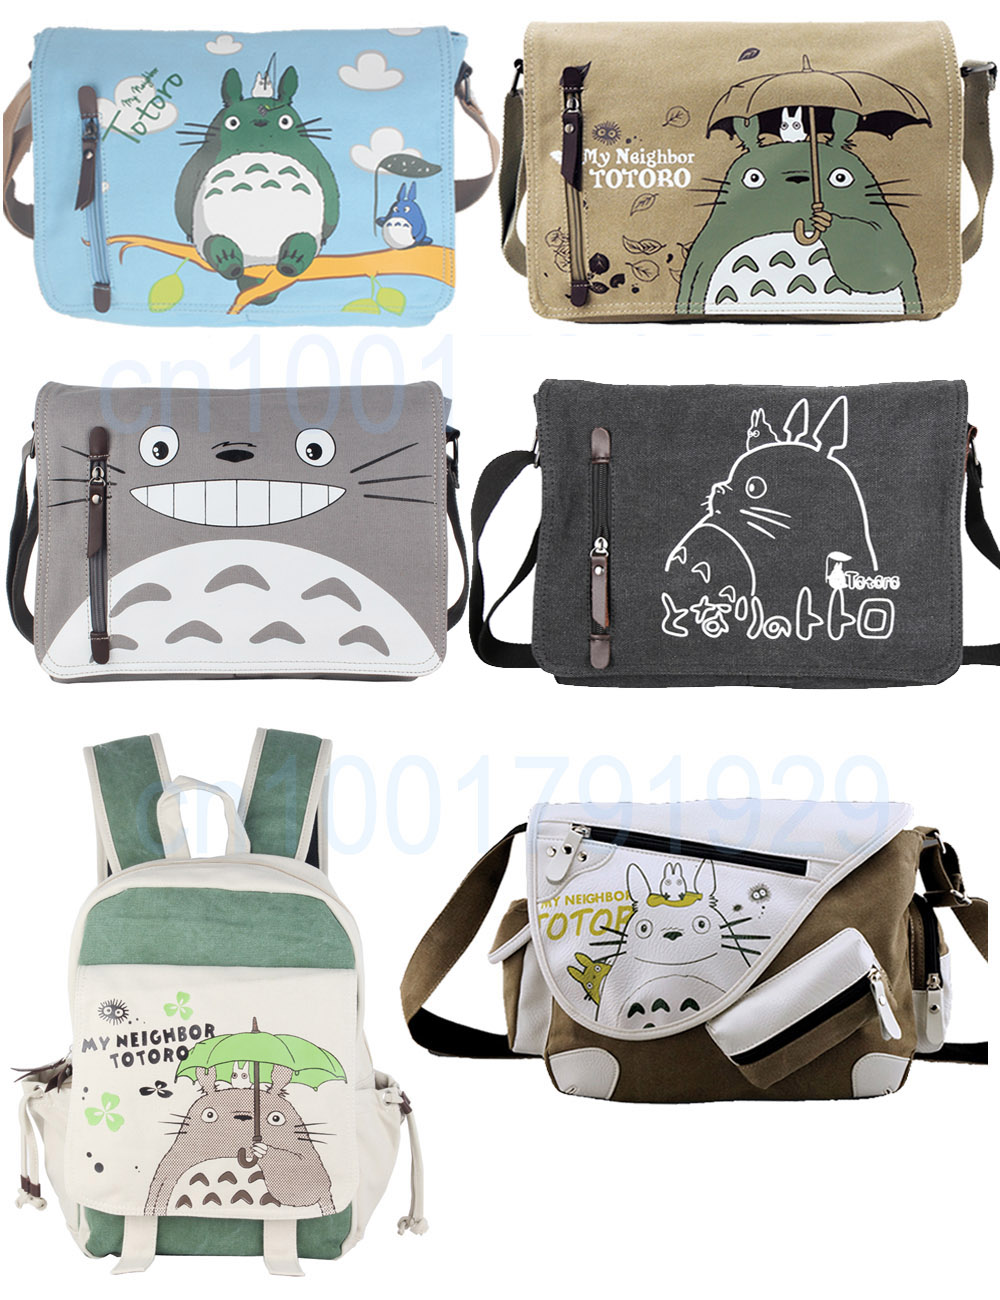 Ecoparty Sling Pack My Neighbor Totoro Cosplay Anime My Neighbor Totoro Messenger Canvas Bag Shoulder Bag string sling pack